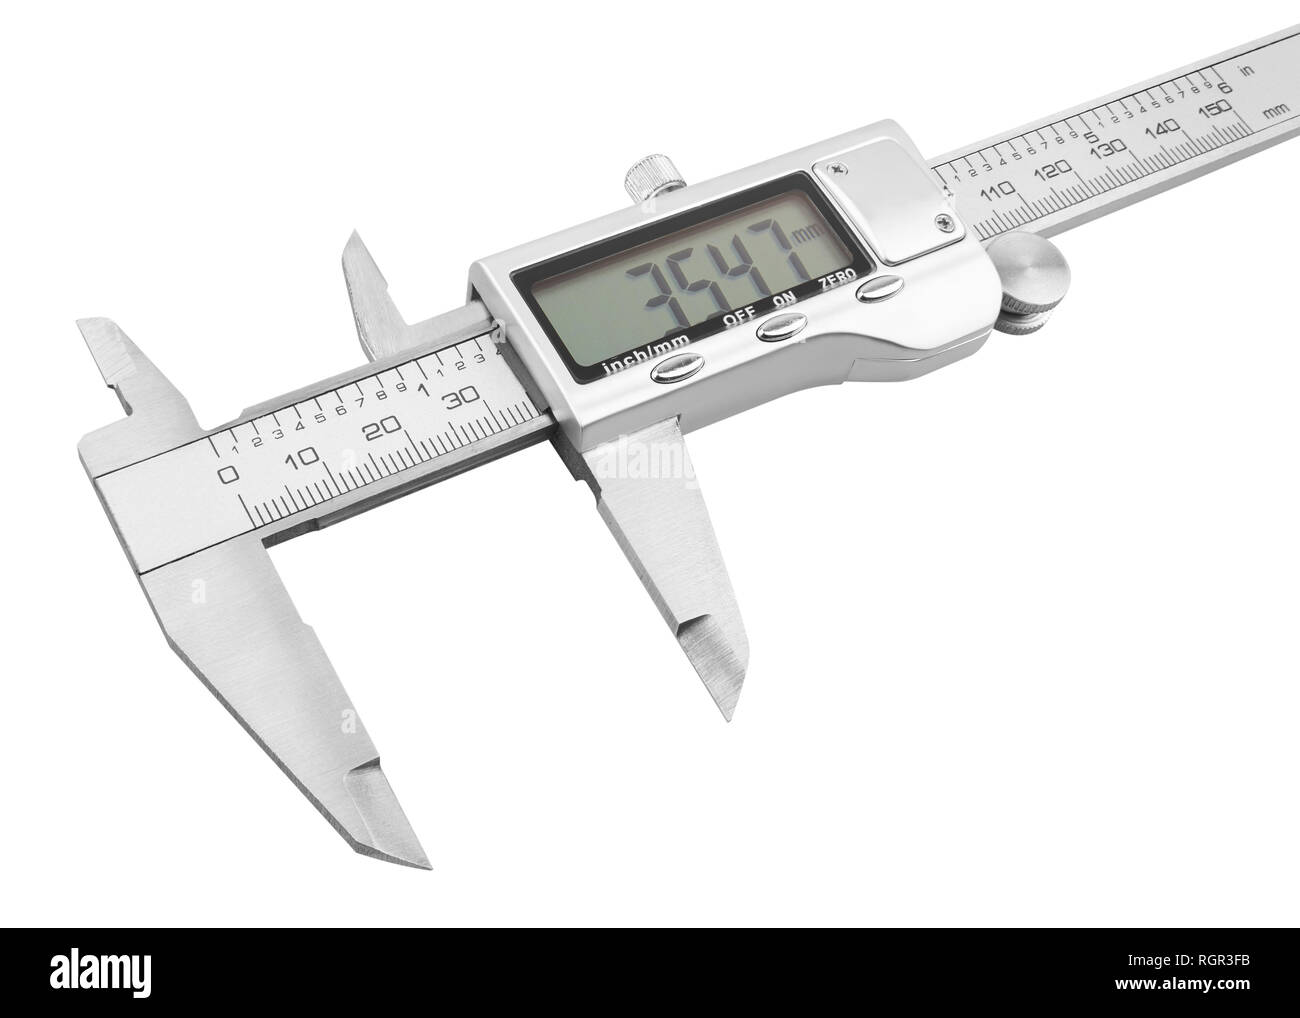 hight resolution of dgital electronic vernier caliper isolated on white background stock image